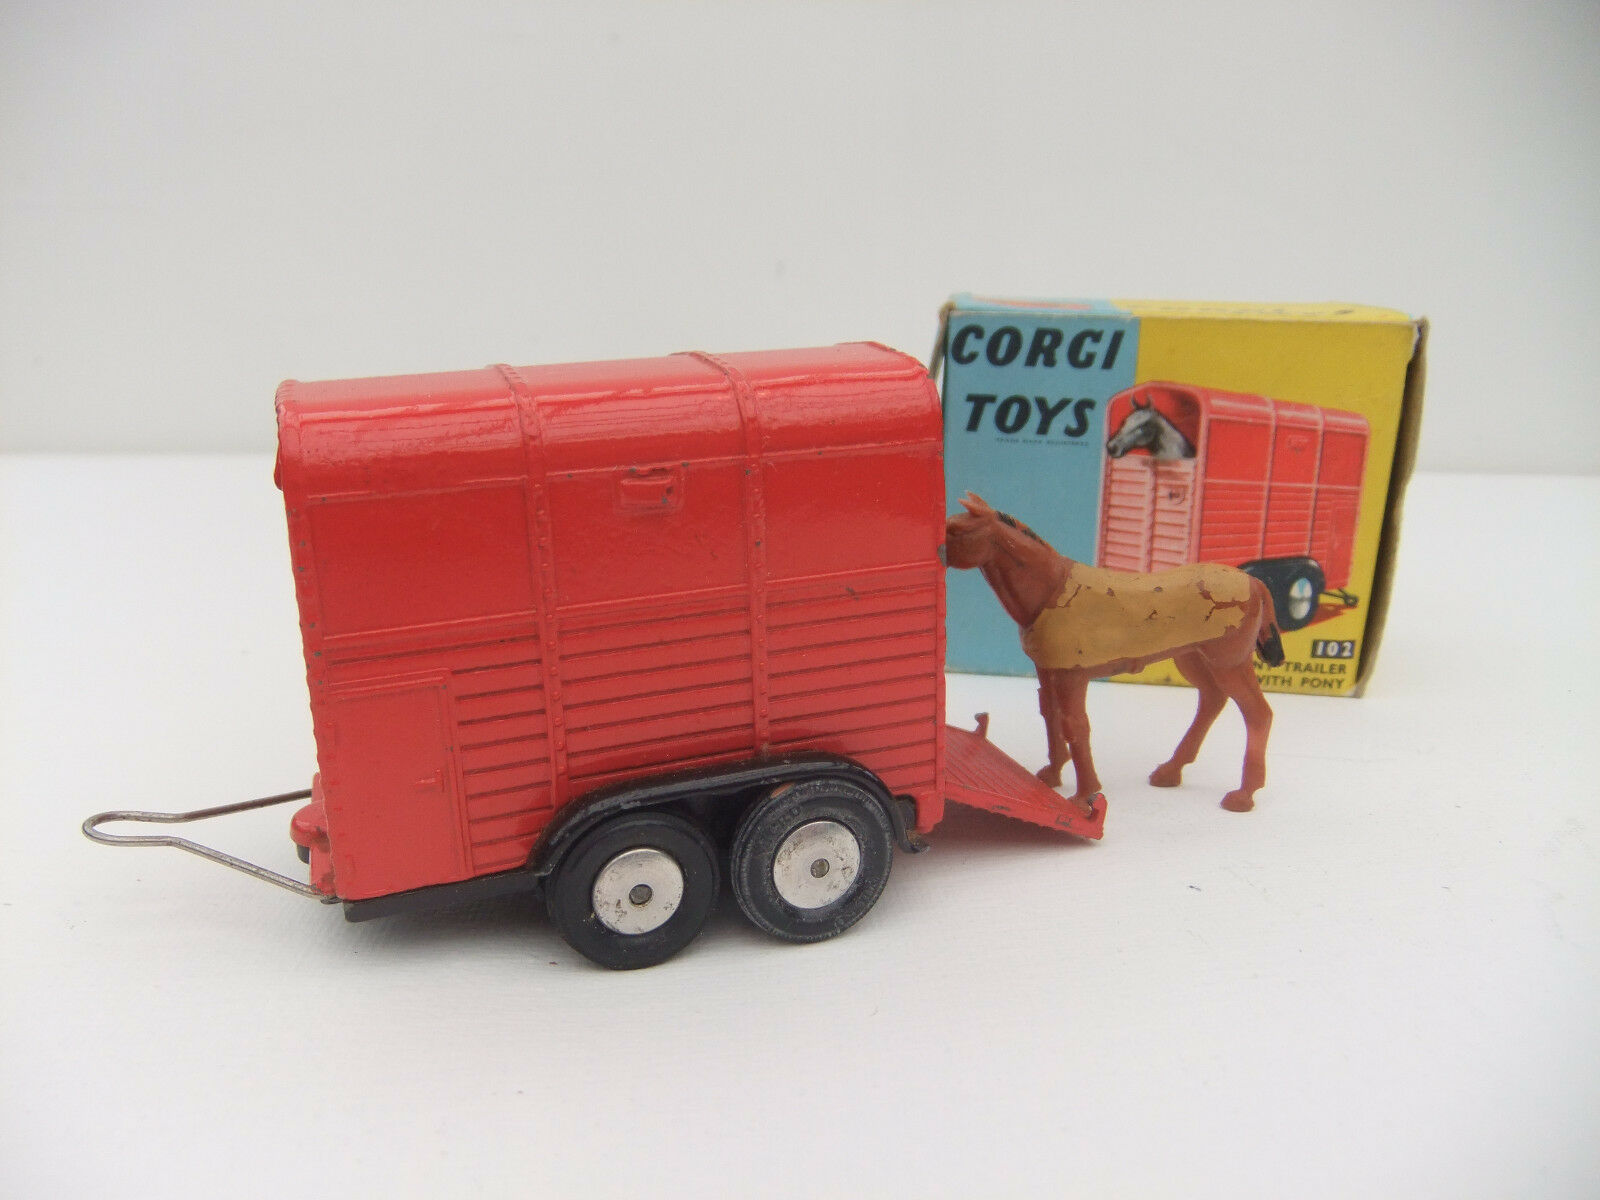 Corgi 102 Rices Pony Horse Trailer Vintage Model Original  Boxed Toy 1960s & Pony  réductions et plus